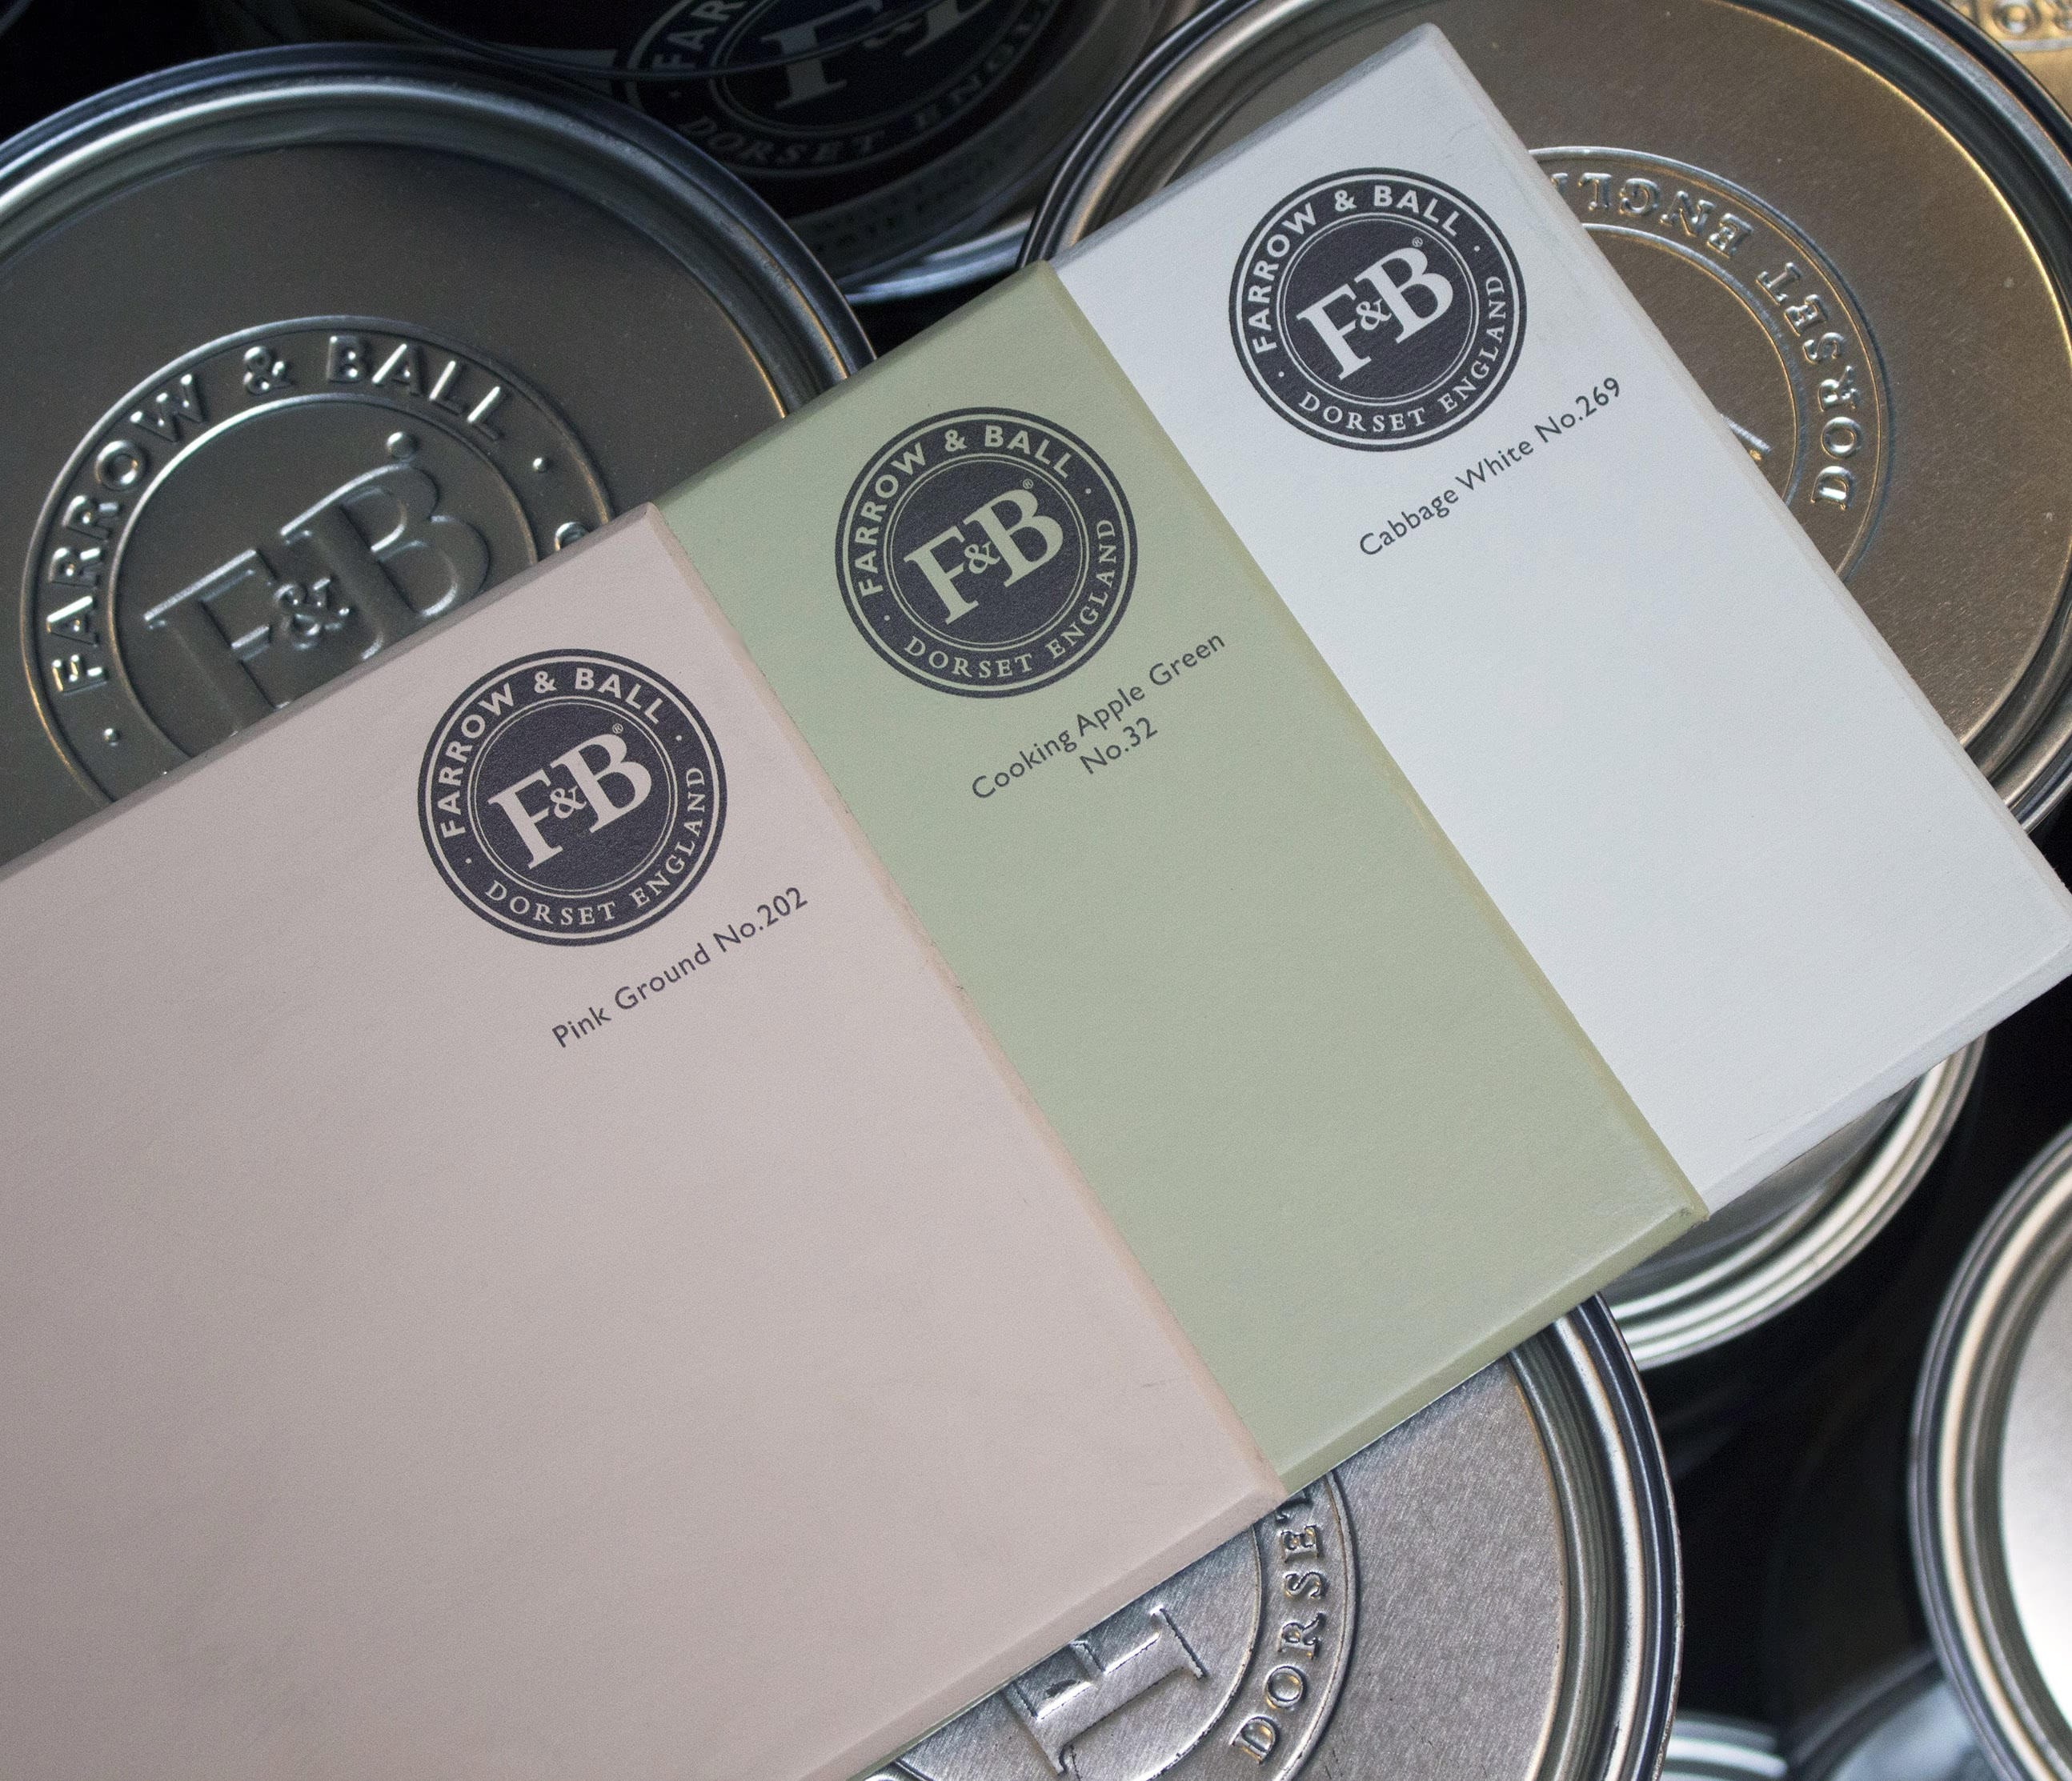 farrow&ball, farrow and ball, paint, decorating, paint brush, cooking apple green